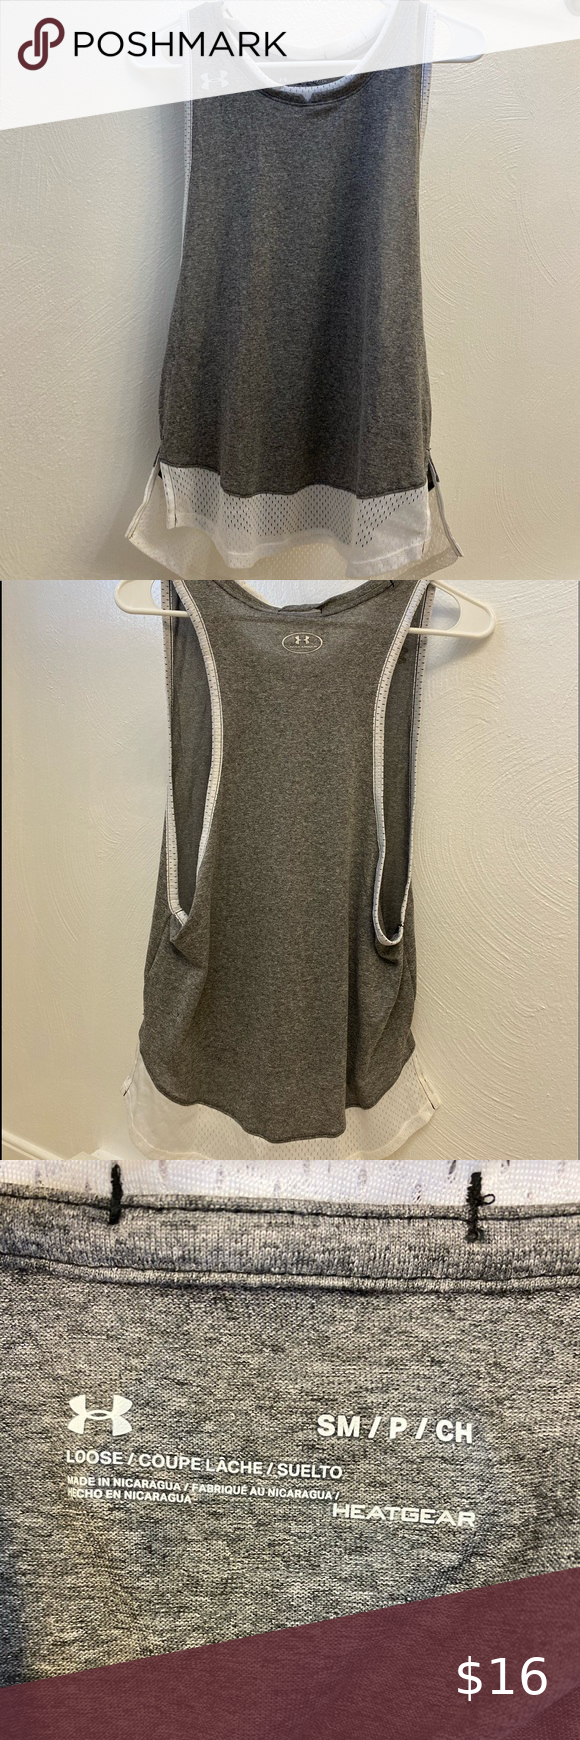 ⭐️ New w/o tags Under Armour tank ⭐️ UA tank, never worn- perfect for su…